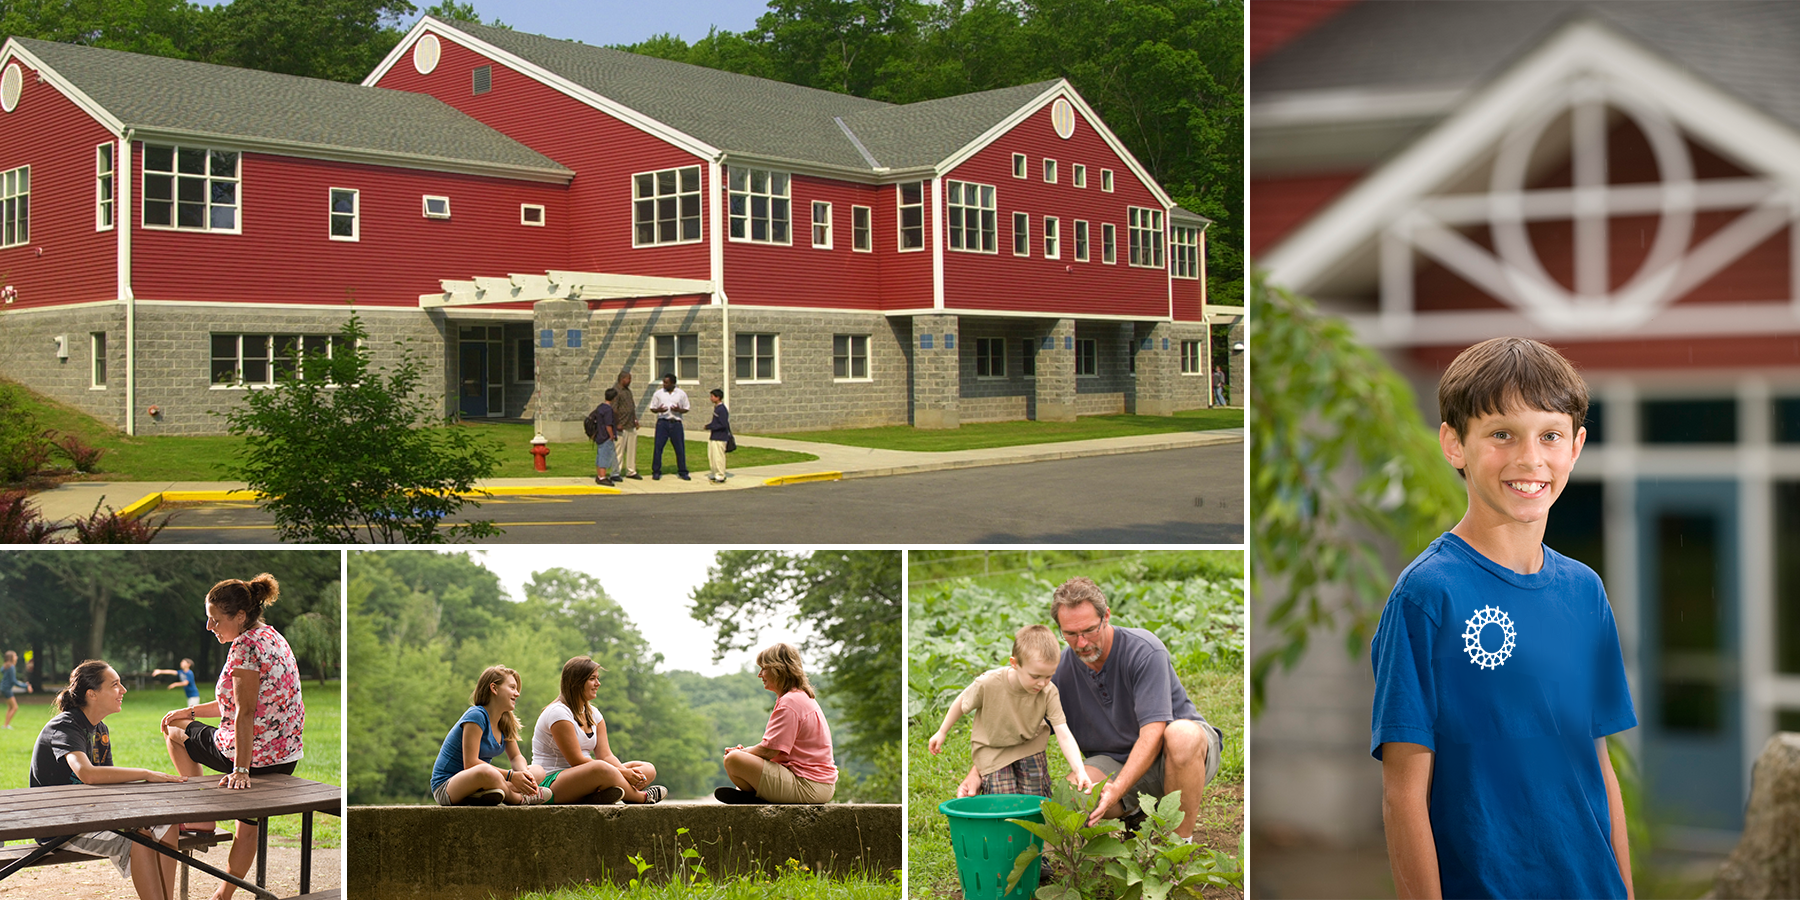 waterford country school special education program for children grades kindergarten through 12th grade